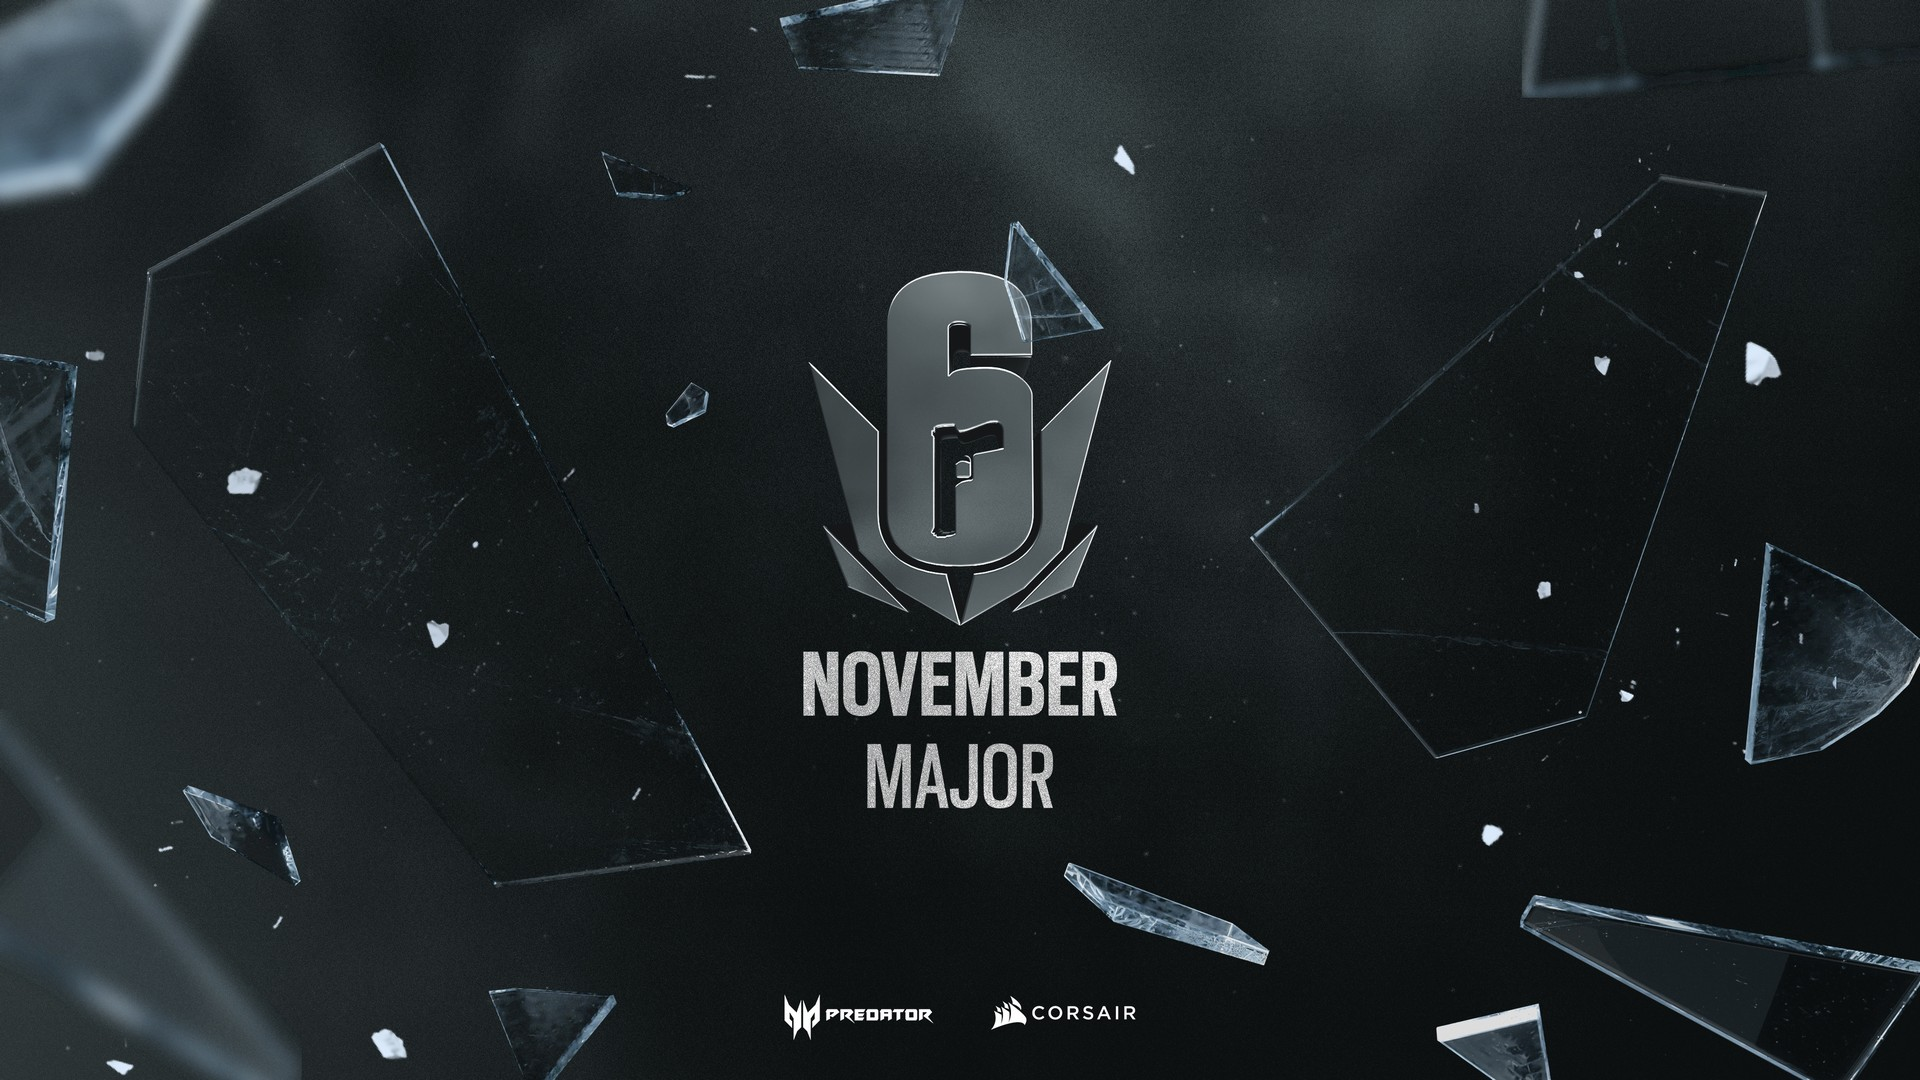 Ubisoft Offers all Tom Clancy's Rainbow Six Fans The Chance To Be Featured In The November Six Major